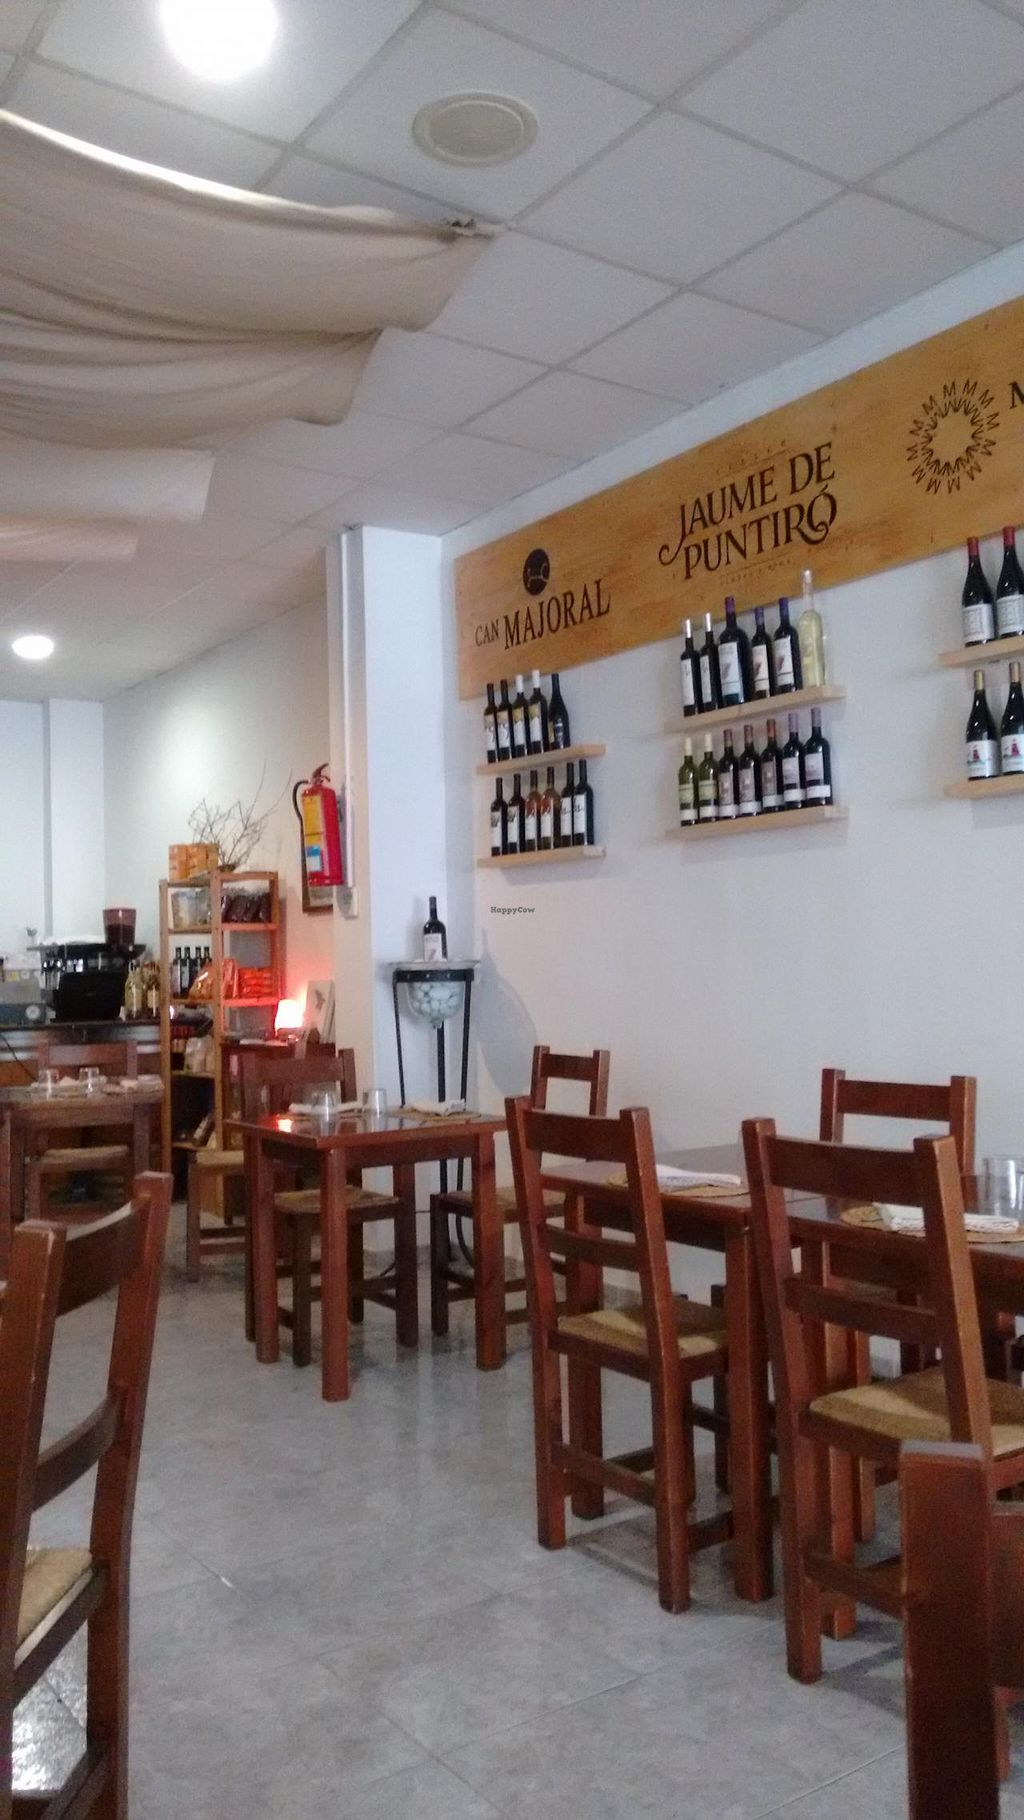 """Photo of Es Ginebro  by <a href=""""/members/profile/craigmc"""">craigmc</a> <br/>Interior with organic wines <br/> May 31, 2015  - <a href='/contact/abuse/image/24440/104280'>Report</a>"""